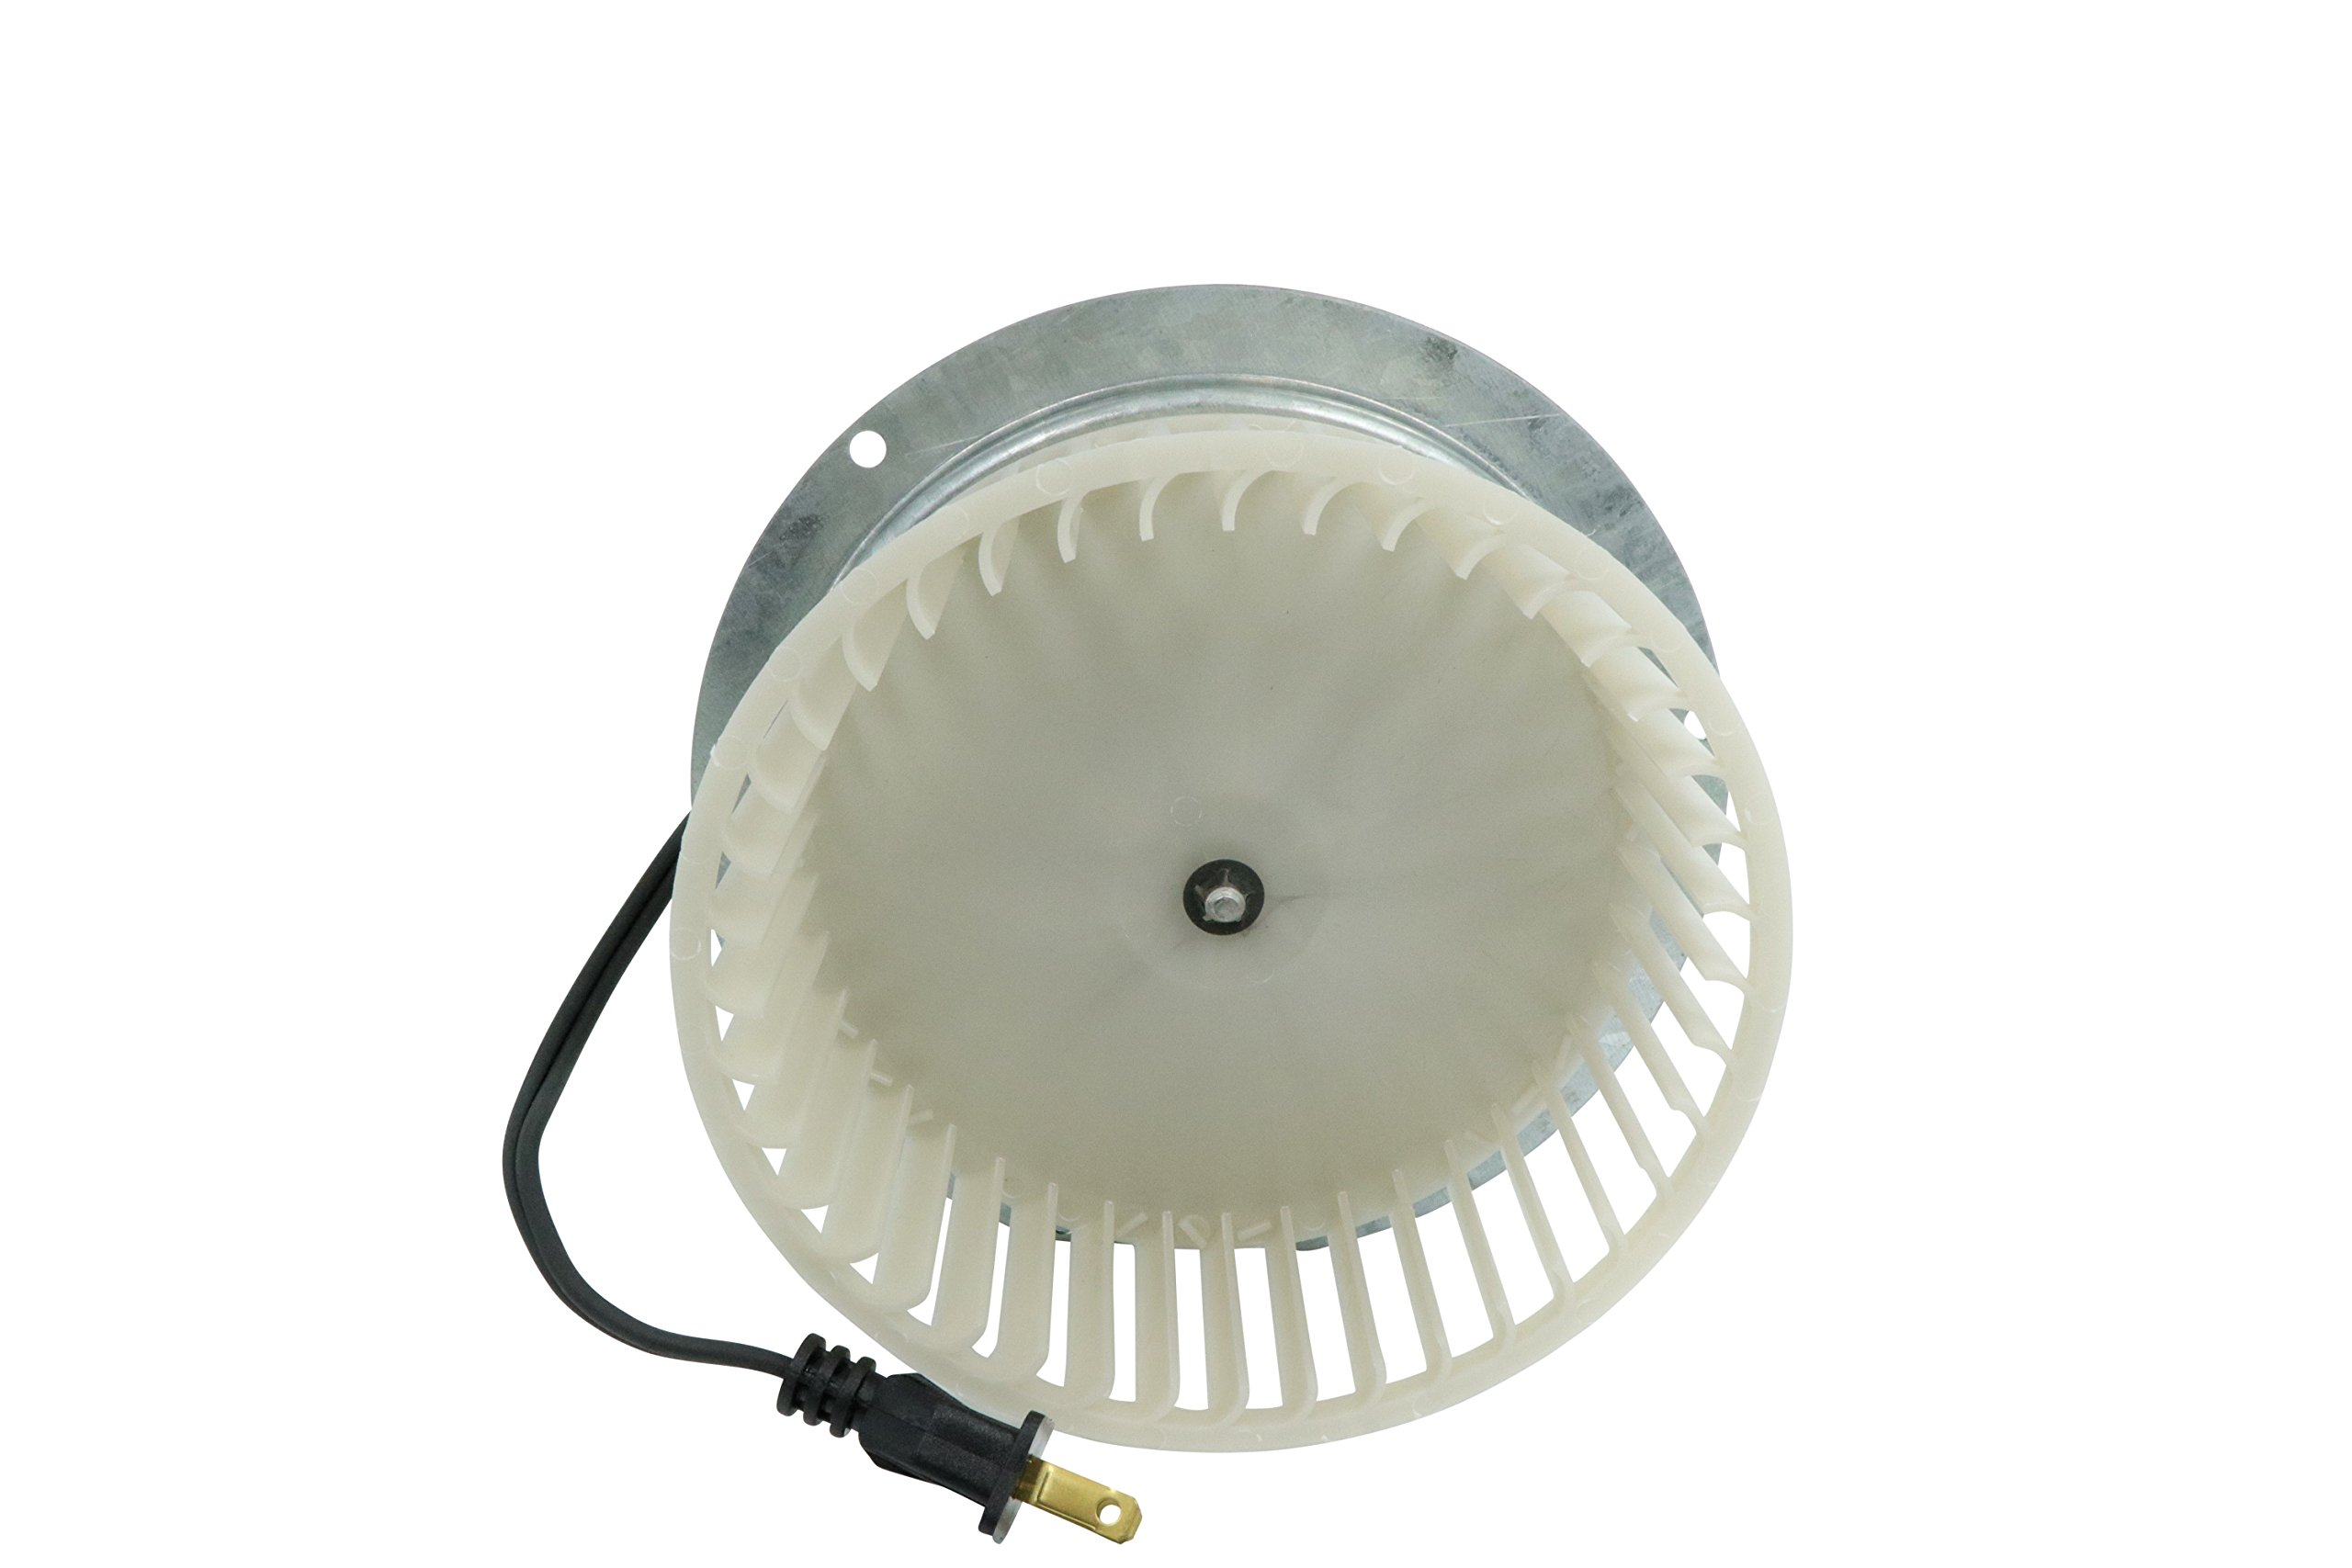 Endurance Pro 0696B000 Motor Assembly for QT100 and QT110 Series Fans Replacement for Nutone by Endurance Pro (Image #2)